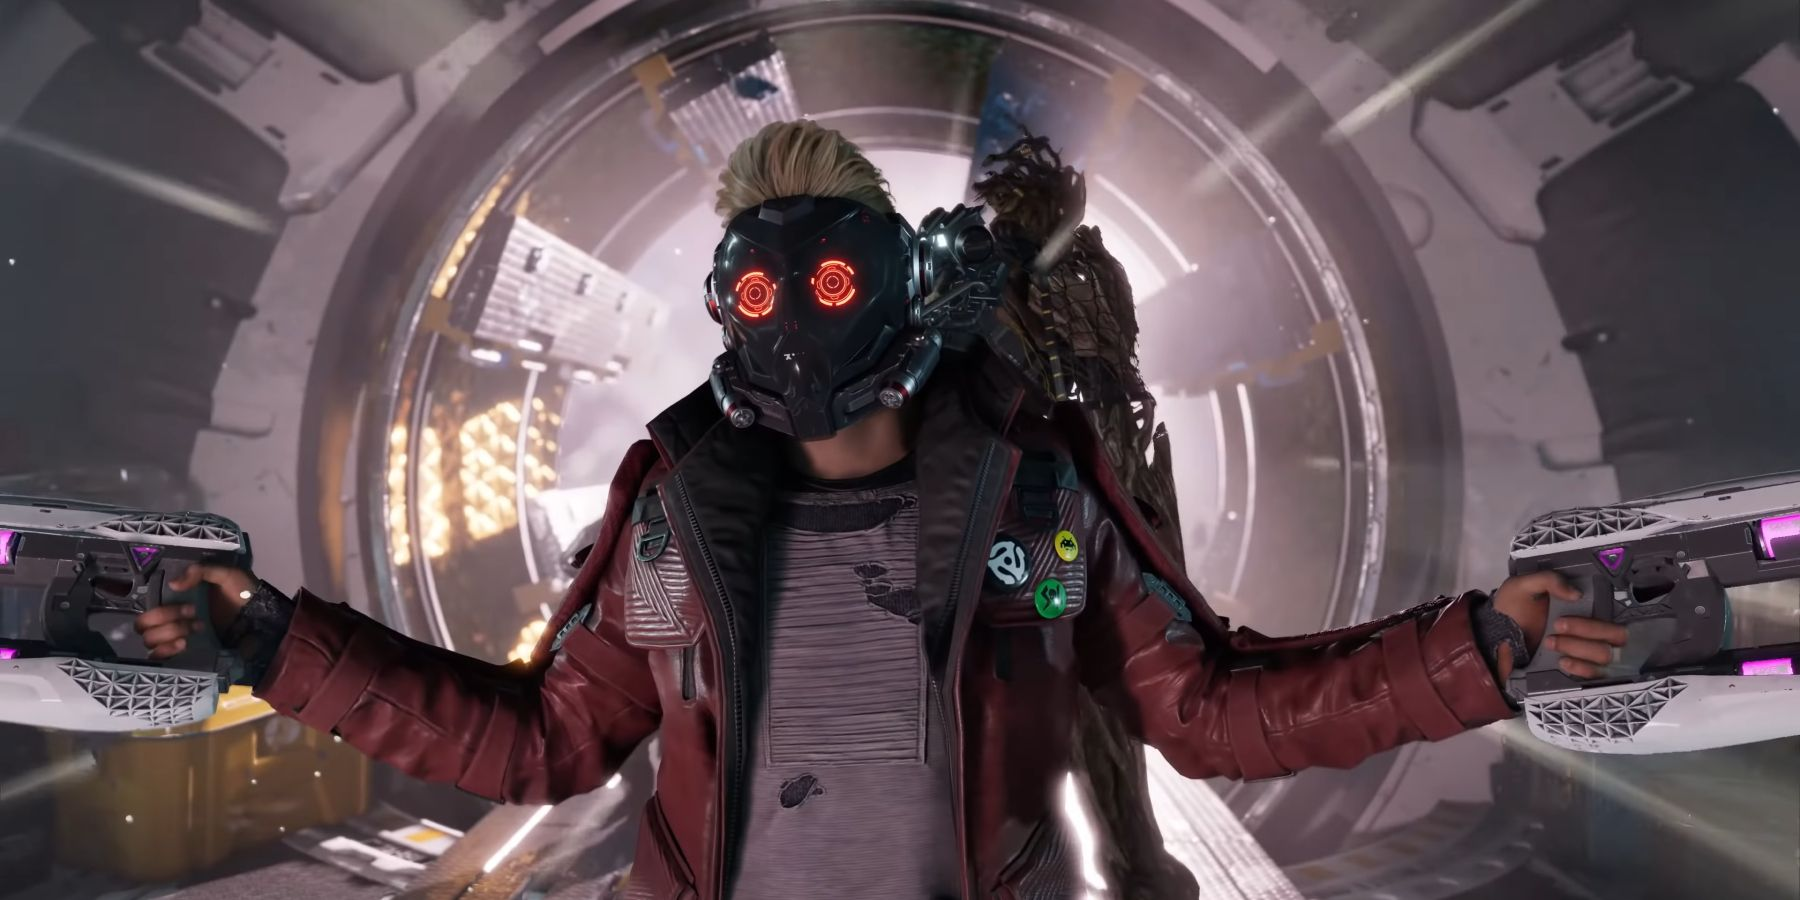 E3 2021: 10 Characters Confirmed For Square Enix's Guardians Of The Galaxy